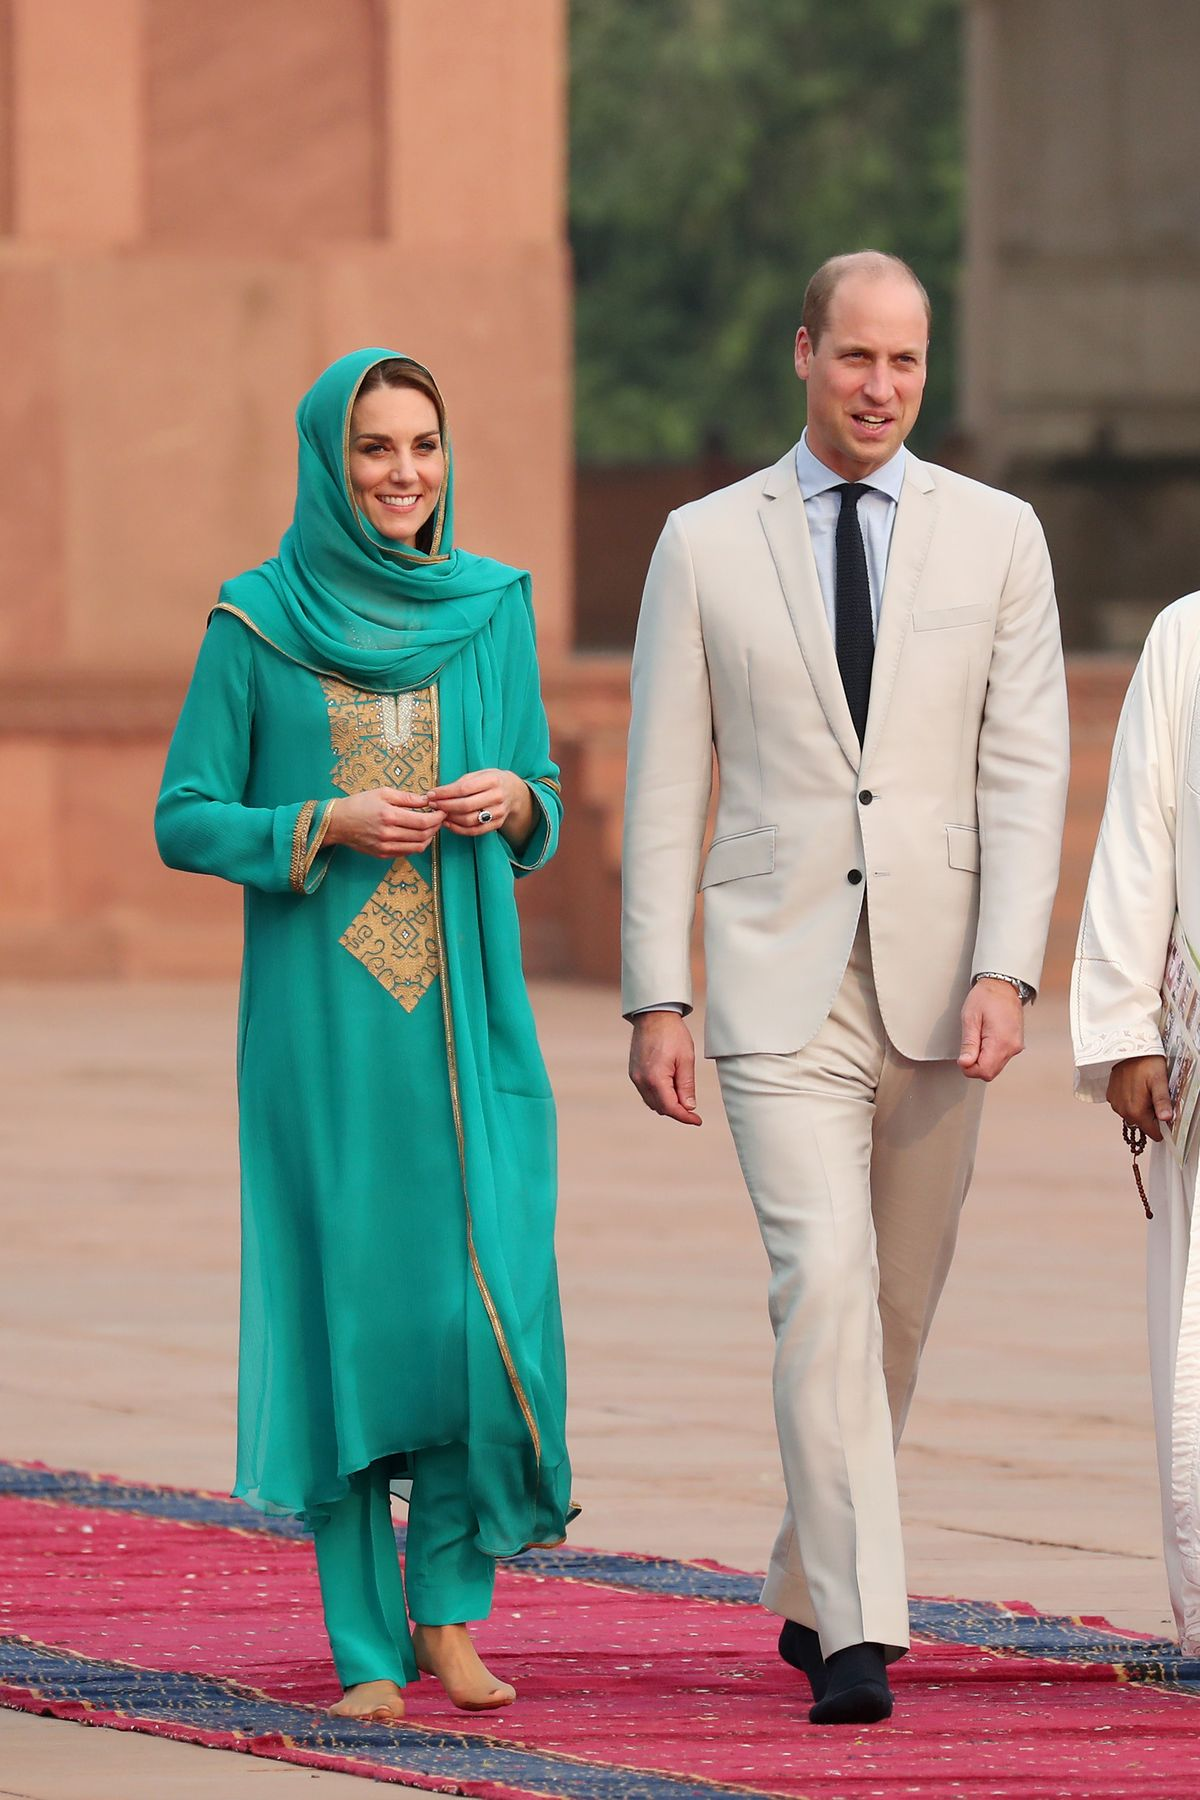 Kate Middleton Is The Master Of Diplomatic Dressing During The Royal Tour Of Pakistan